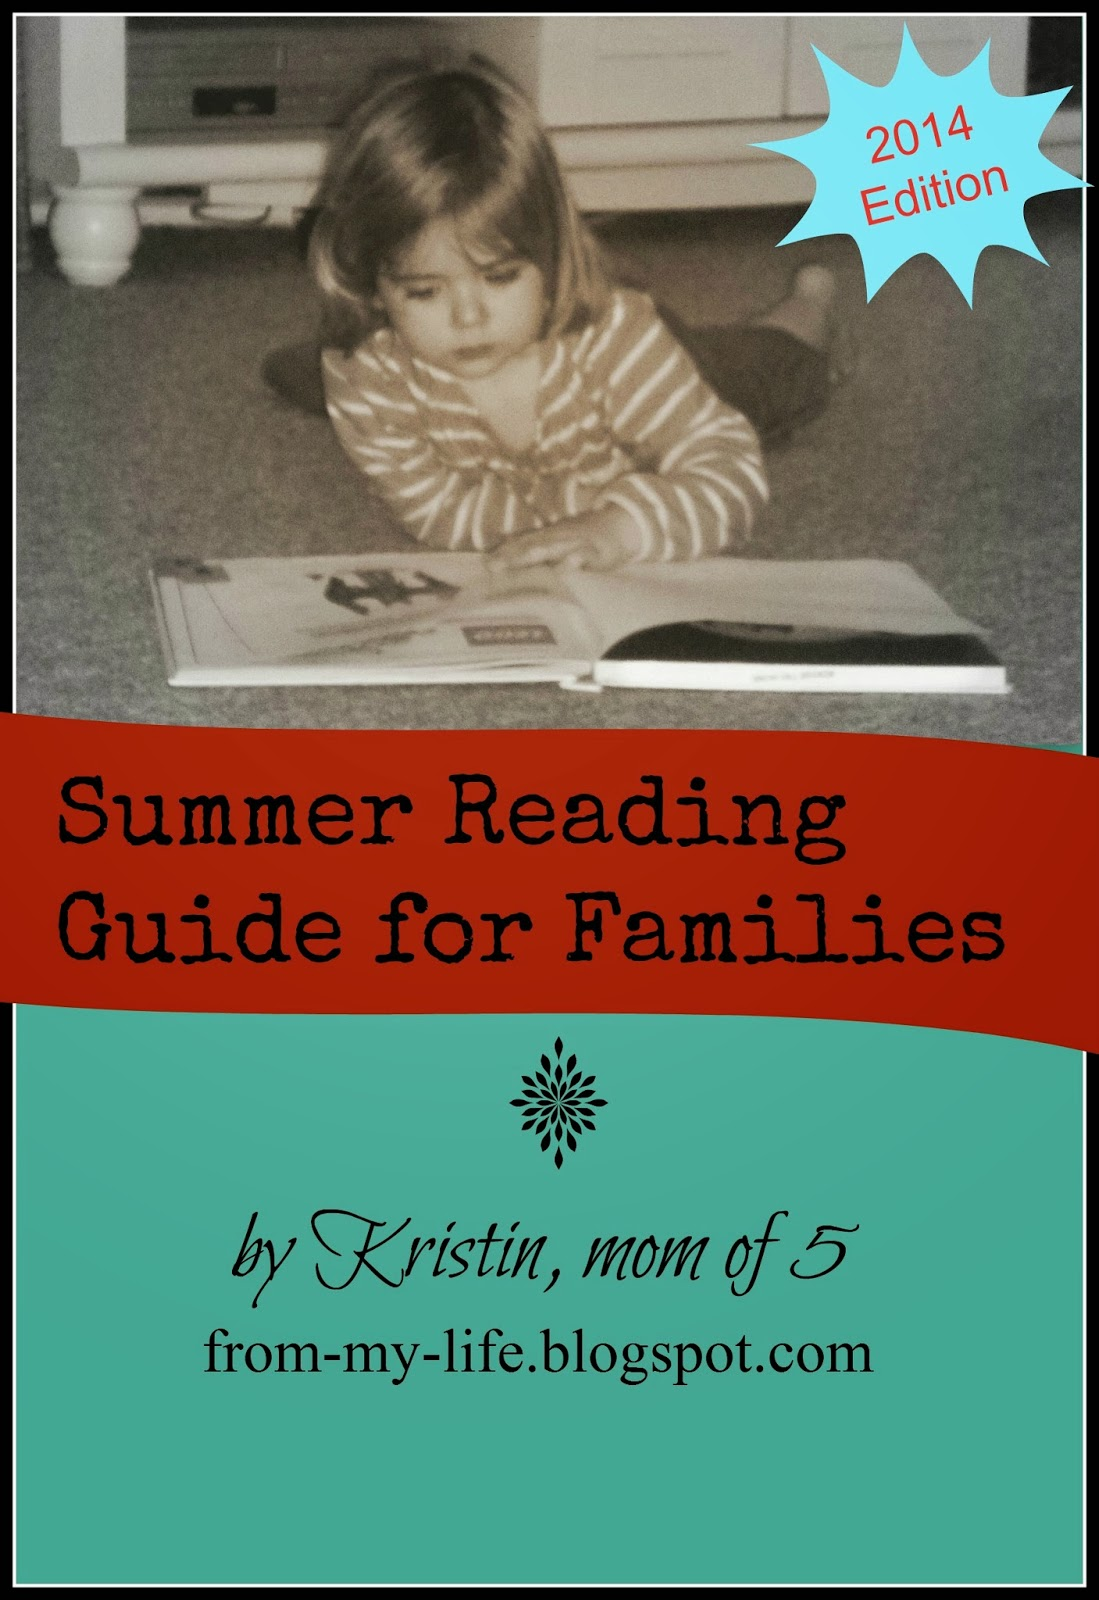 http://bitsandpiecesfrommylife.files.wordpress.com/2014/05/summer-read-aloud-guide-20141.pdf